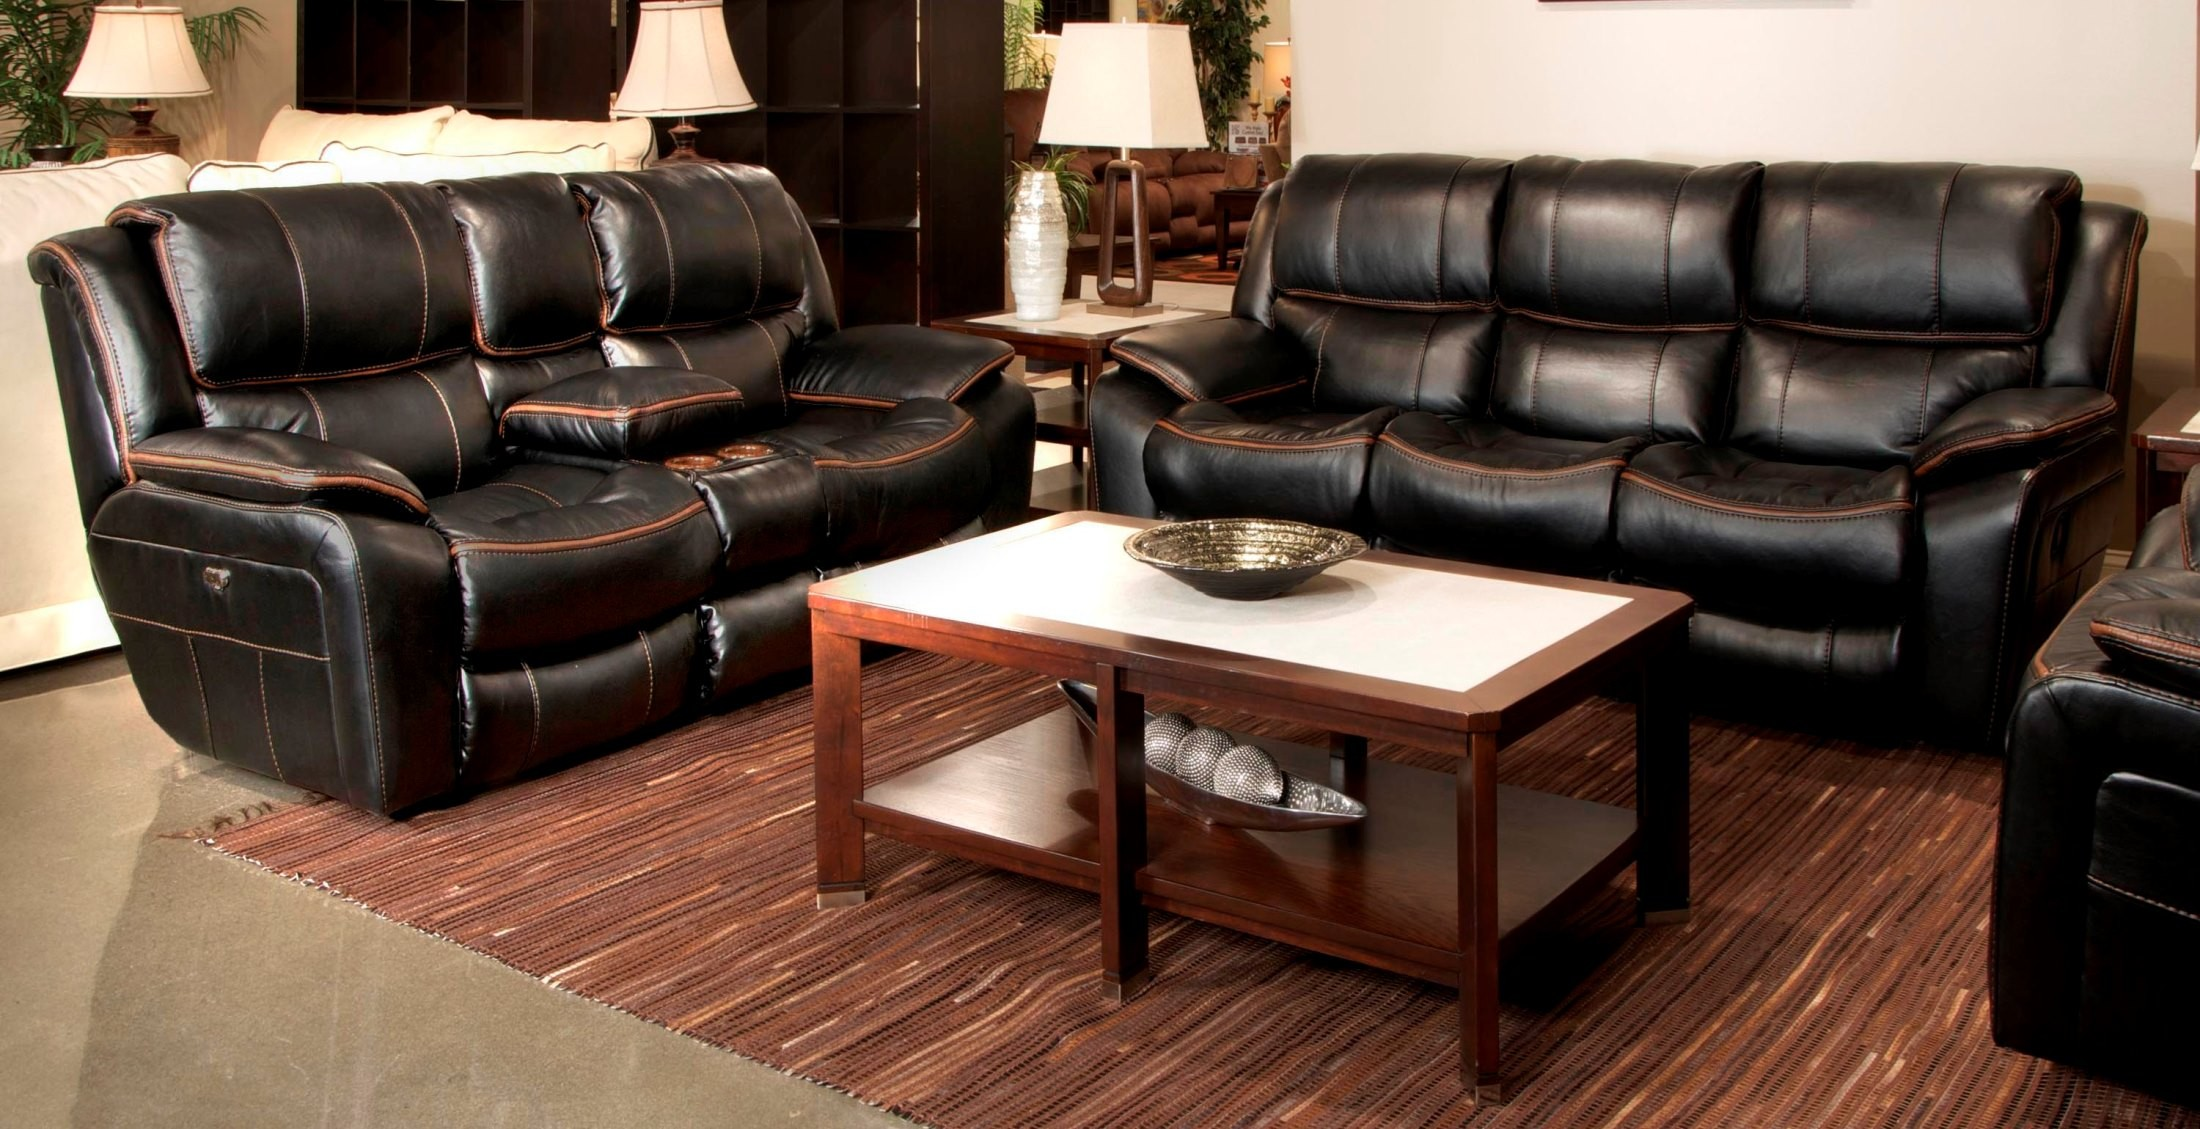 Beckett black power reclining living room set 64511115208 for Black living room furniture sets